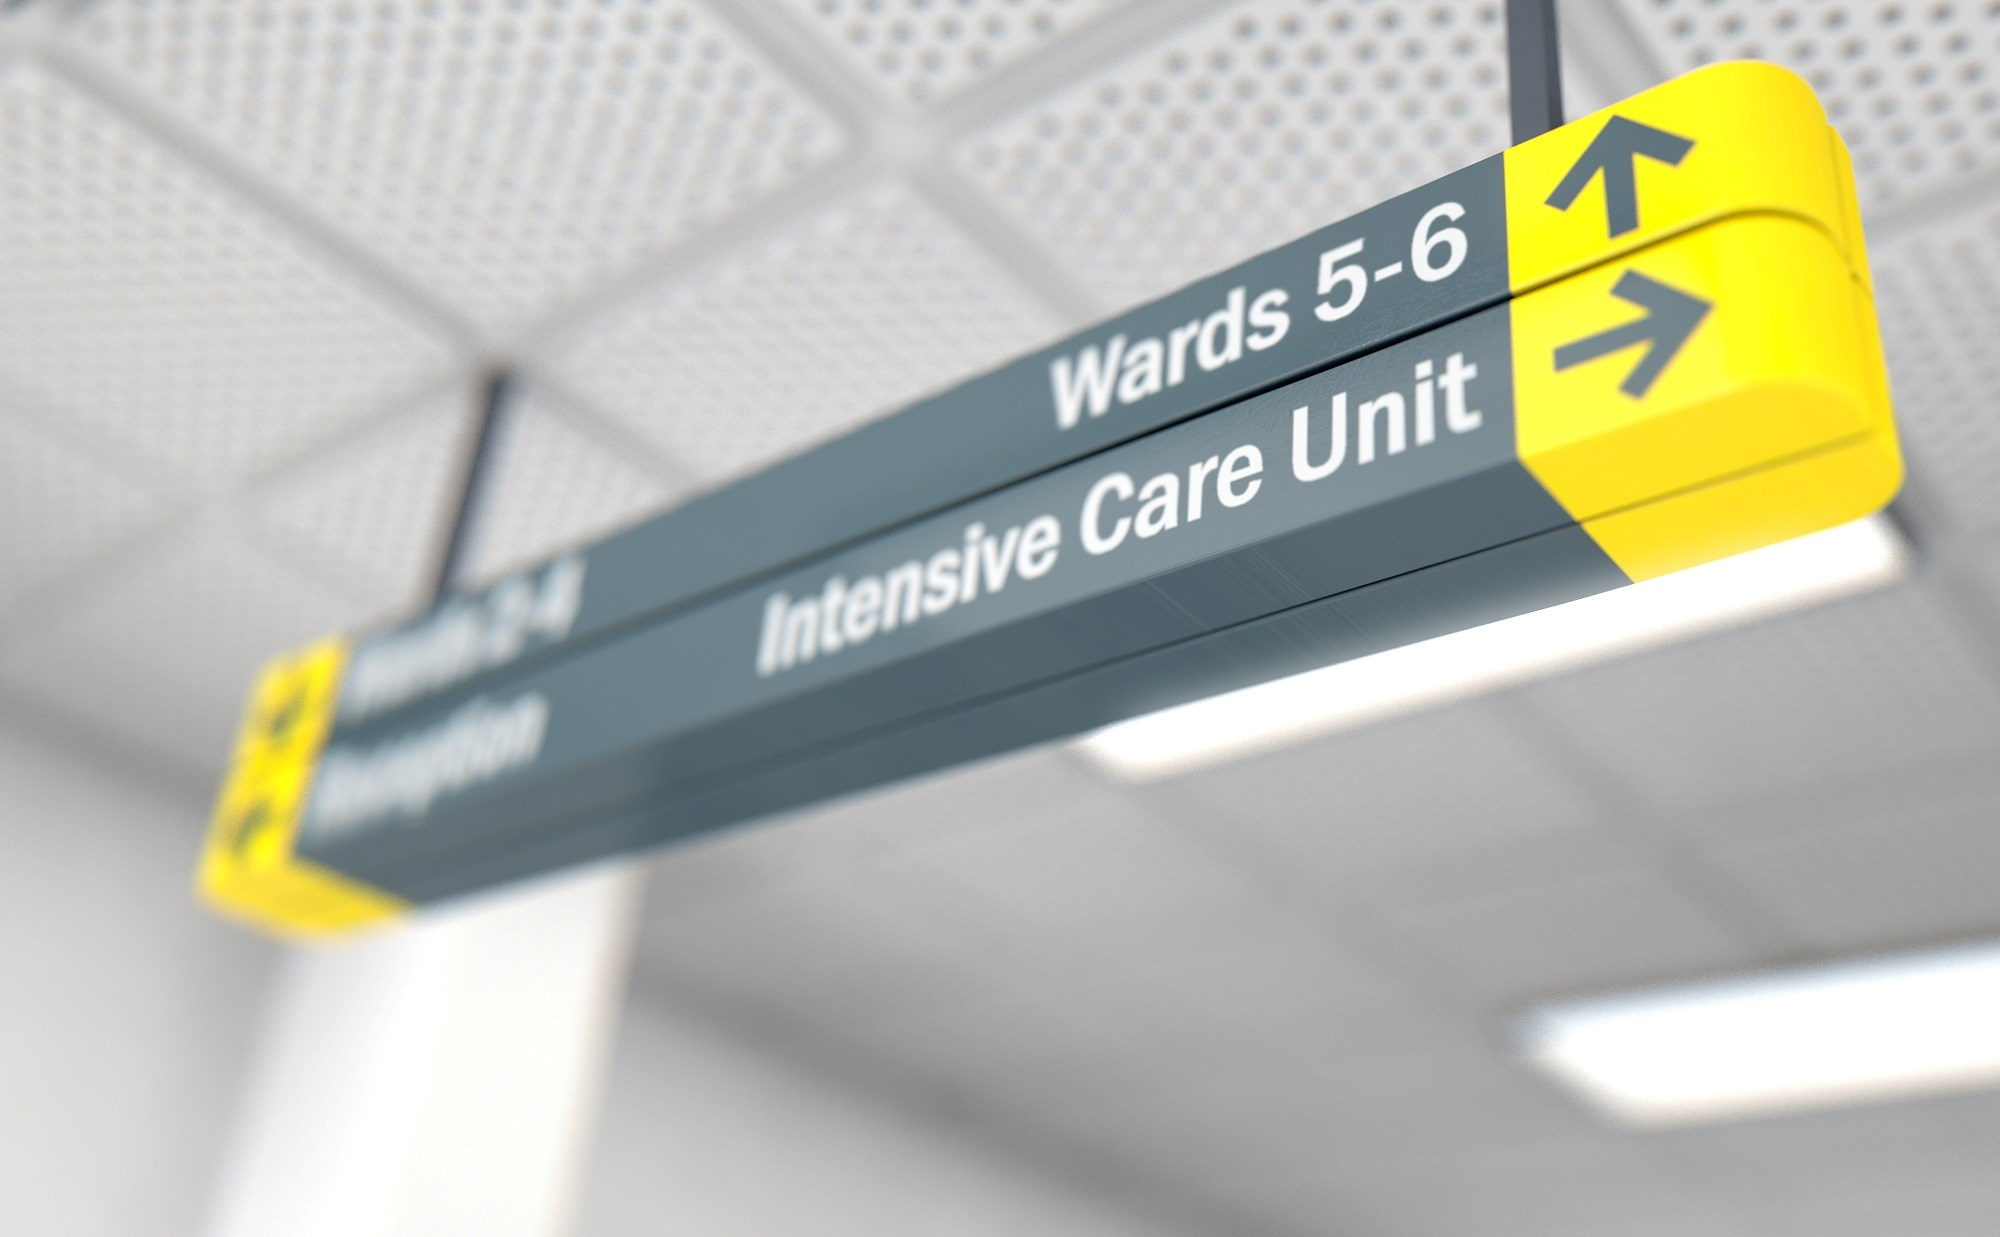 Patients discharged home directly from the ICU were younger in age, less likely to have comorbidities, and less likely to have been admitted to the ICU from the operating or recovery room.